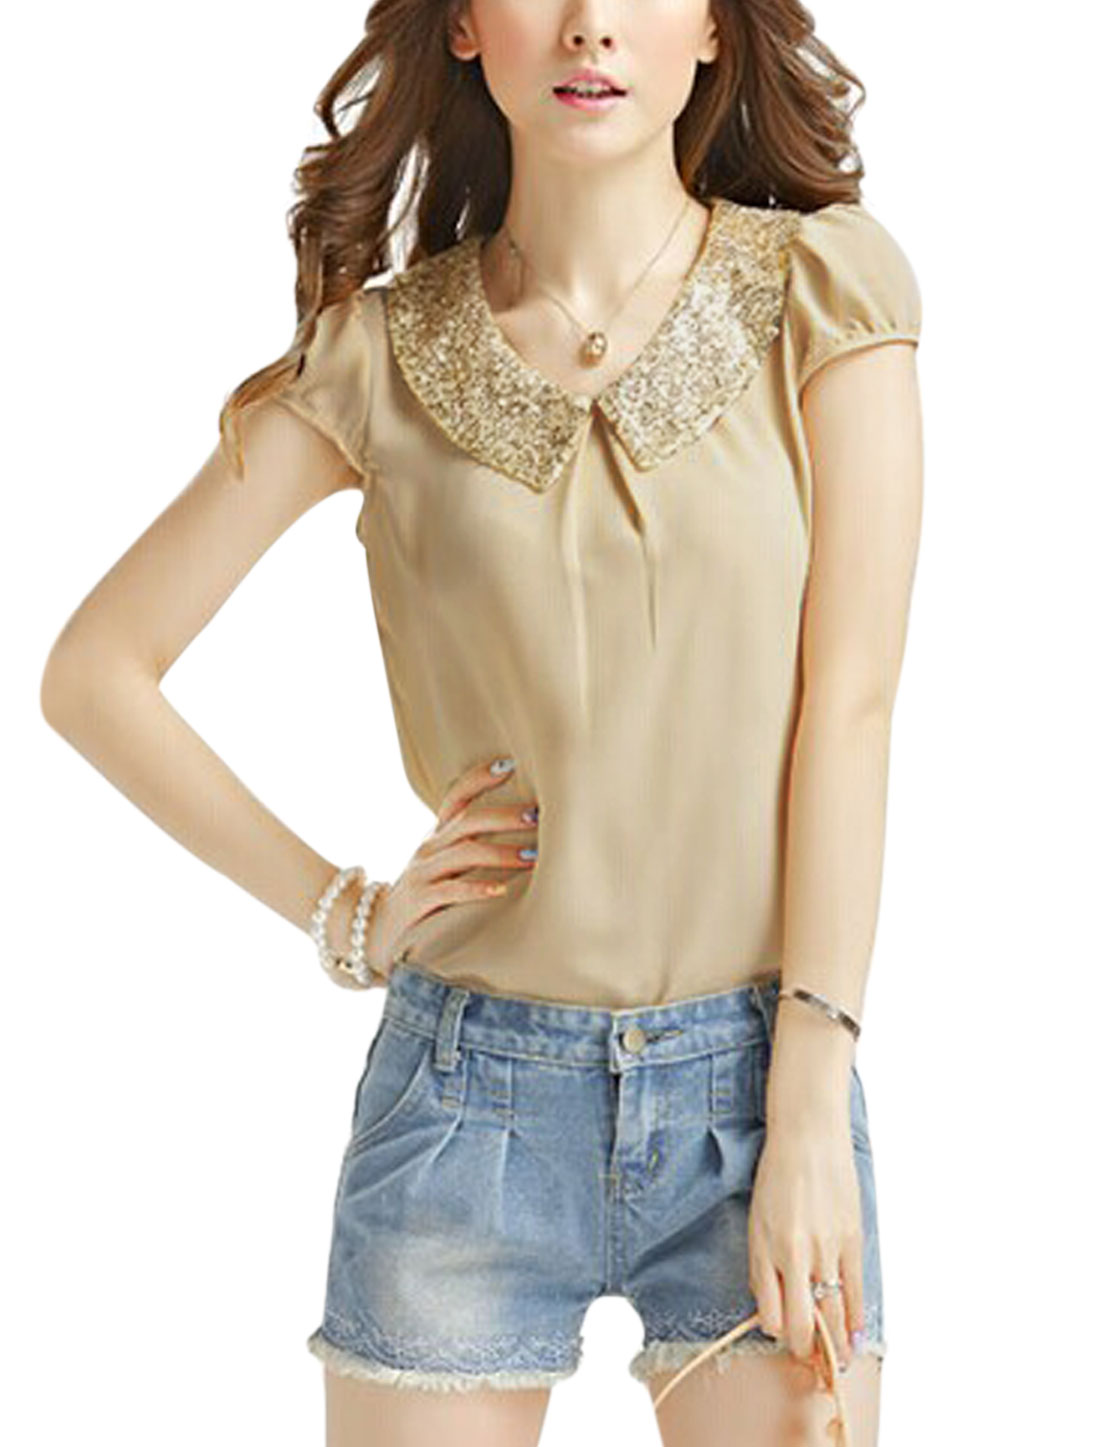 Lady Paillette Embellished Peter Pan Collar Cap Sleeve Chiffon Blouse Apricot XS